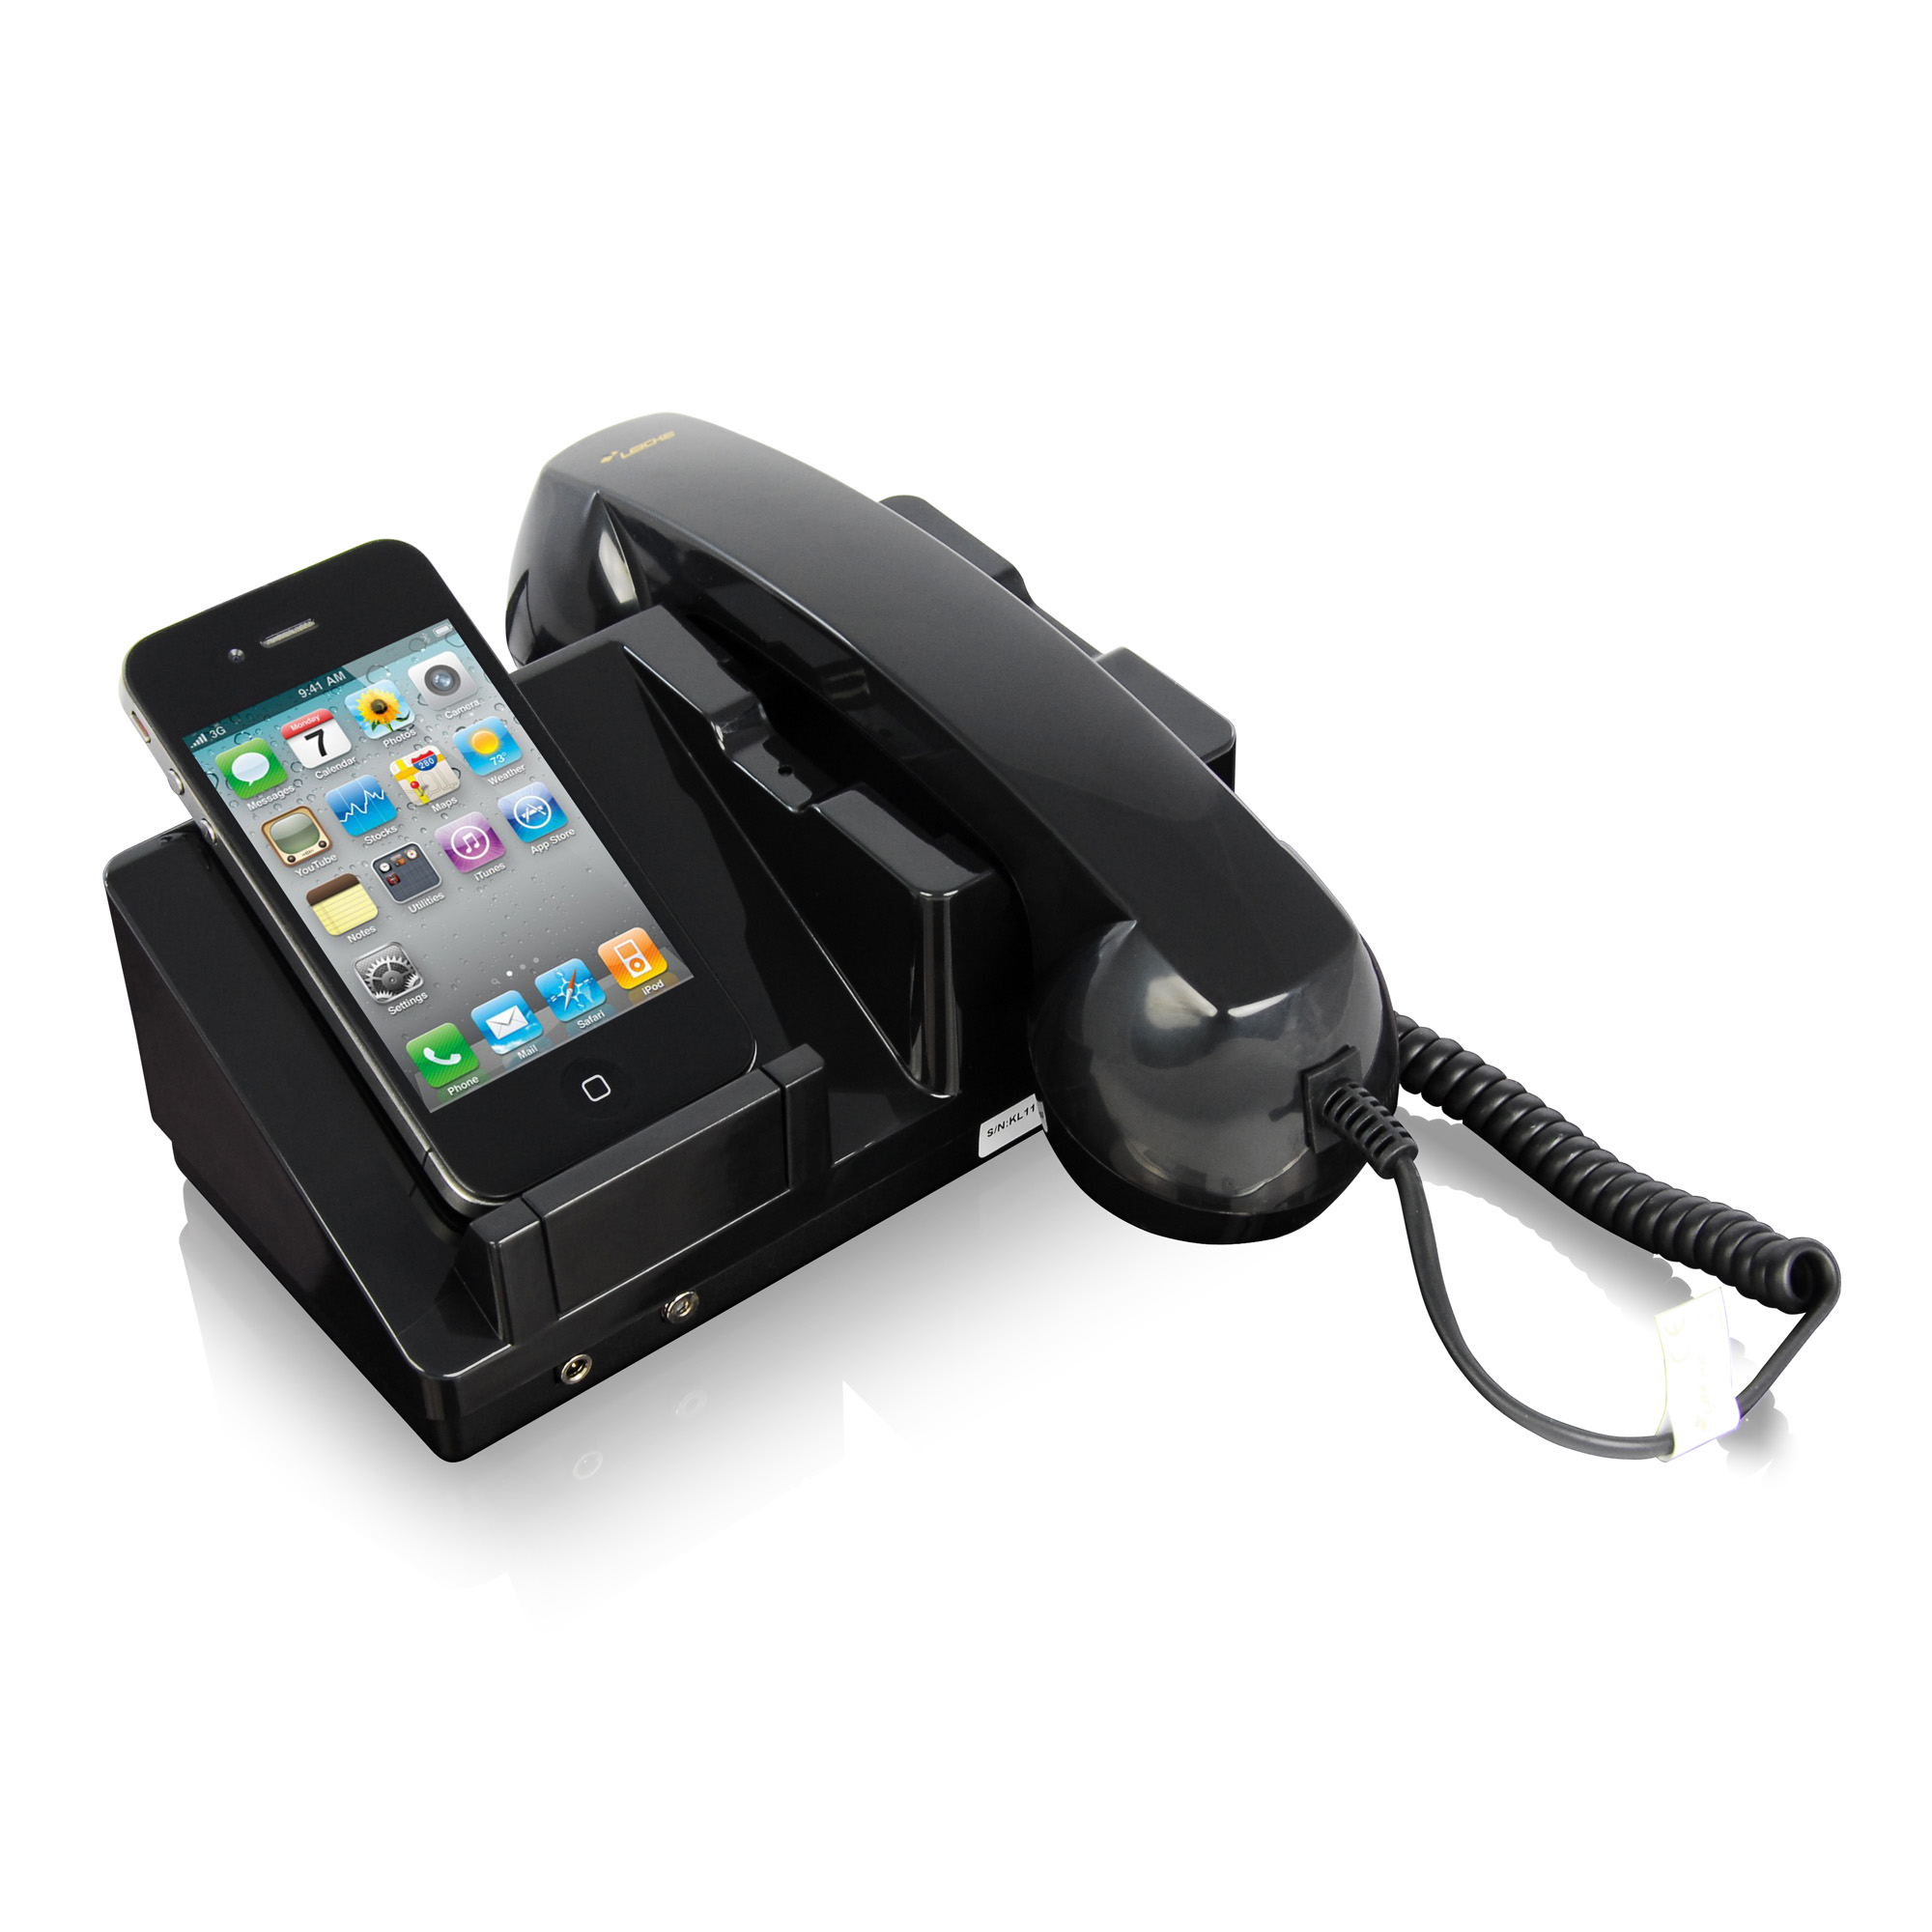 leicke leicke retro docking station for iphone 4 with iphone. Black Bedroom Furniture Sets. Home Design Ideas